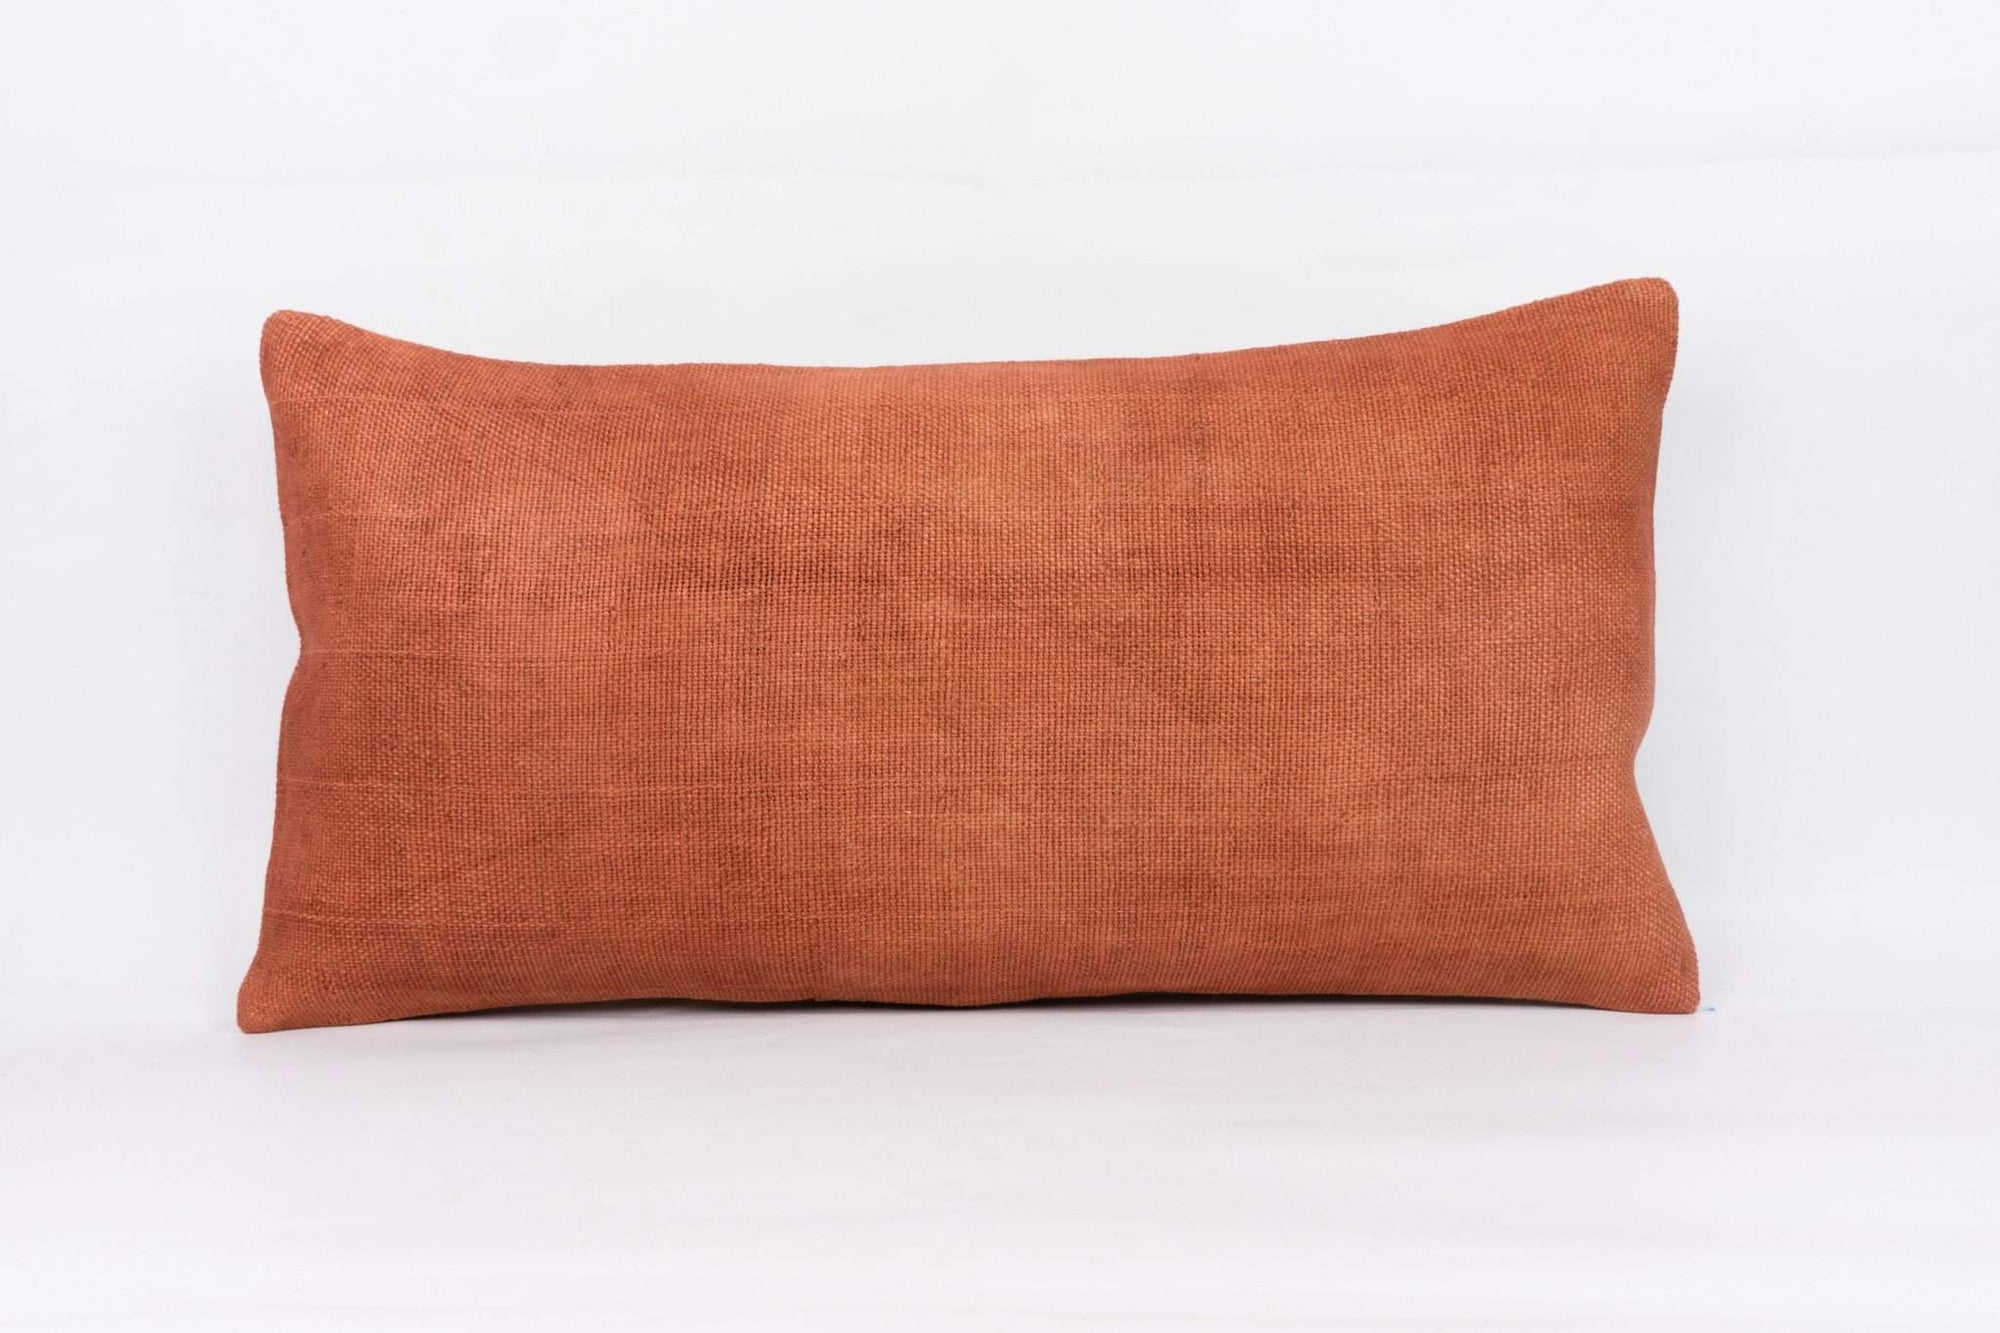 Plain Brown Kilim Pillow Cover 12x24 4181 - kilimpillowstore  - 1